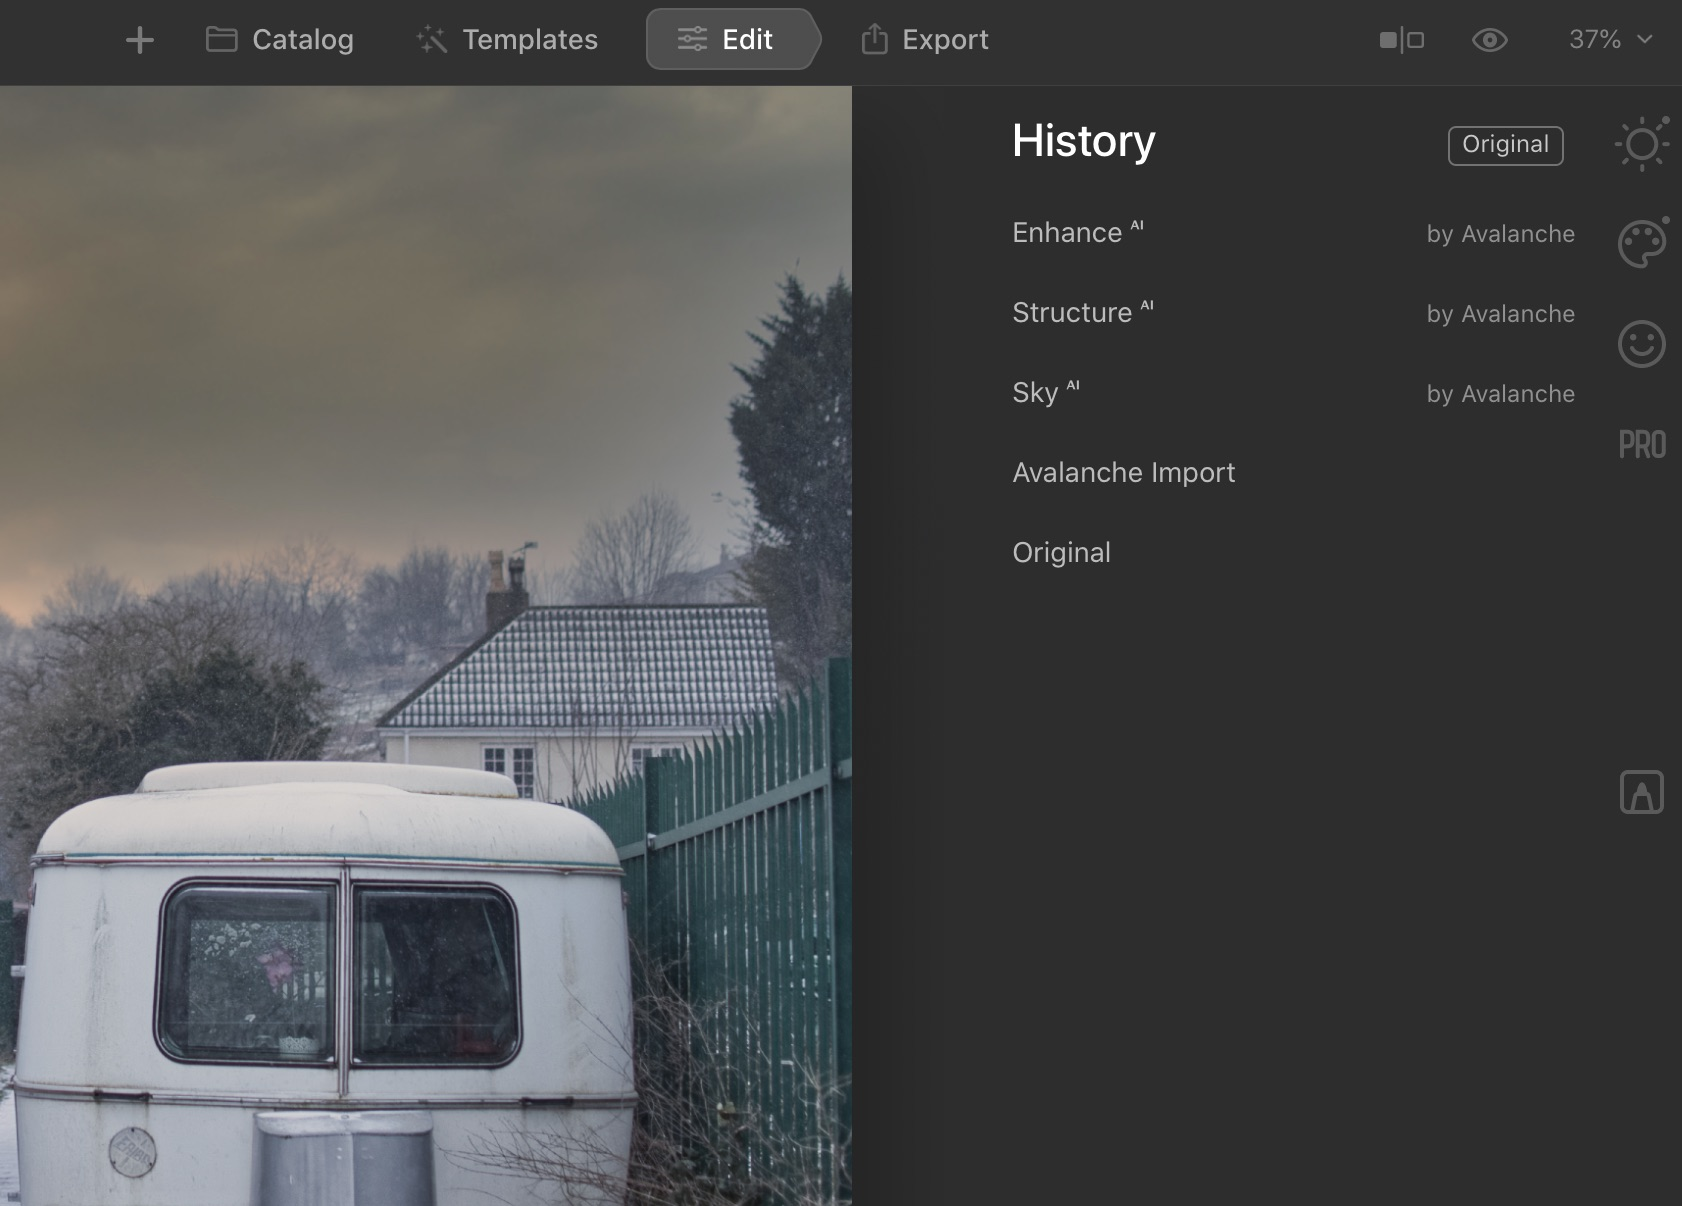 Avalanche migrates all the edits when converting of the photo catalog